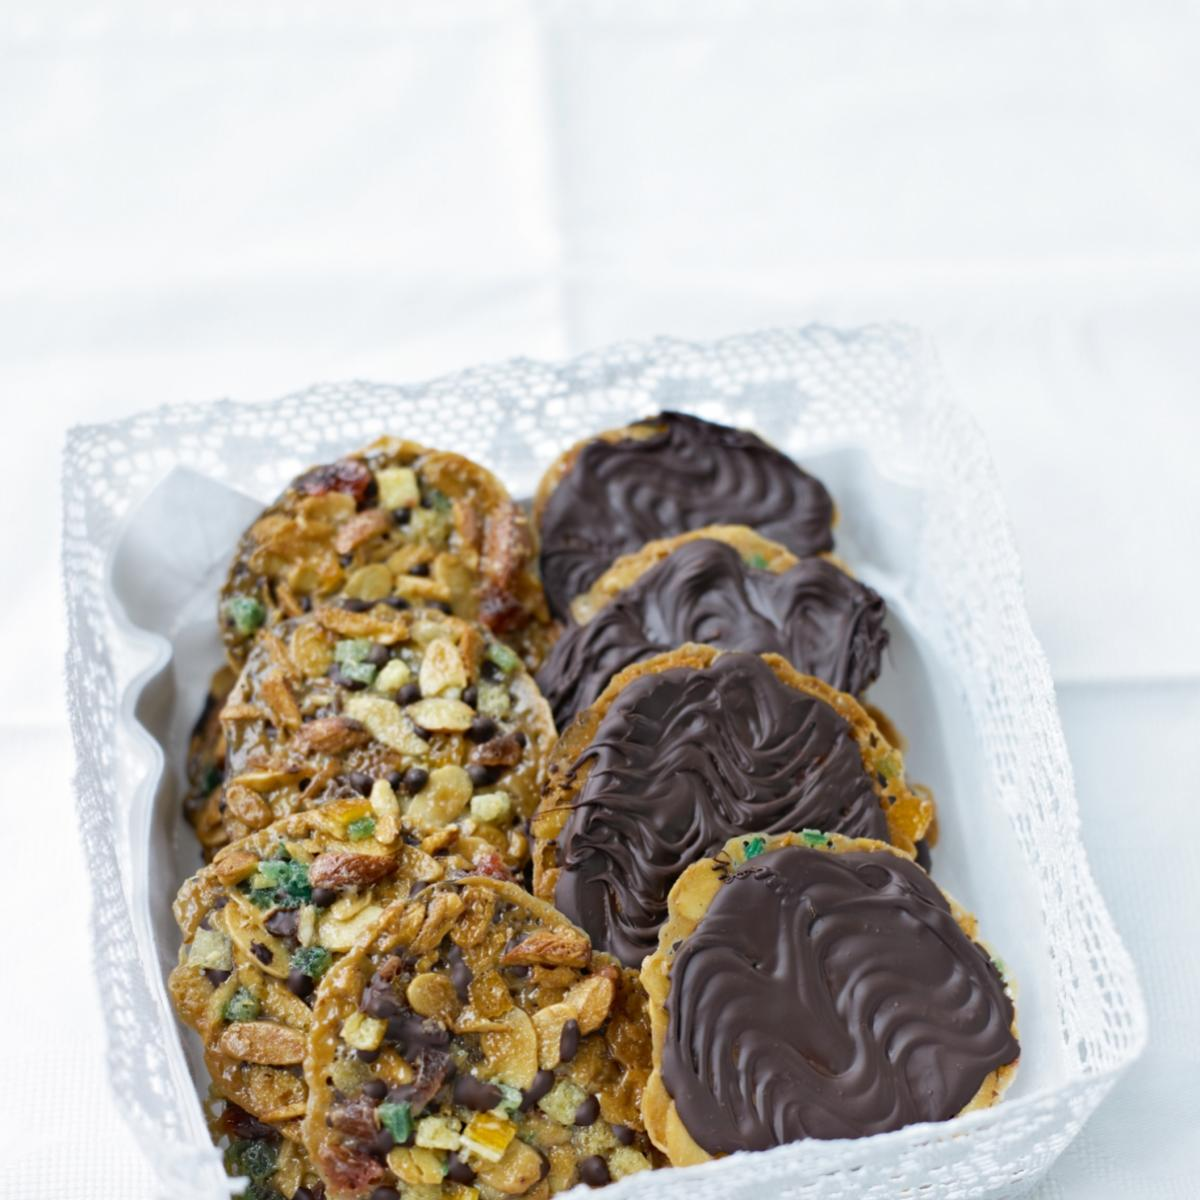 A picture of Delia's Florentines recipe